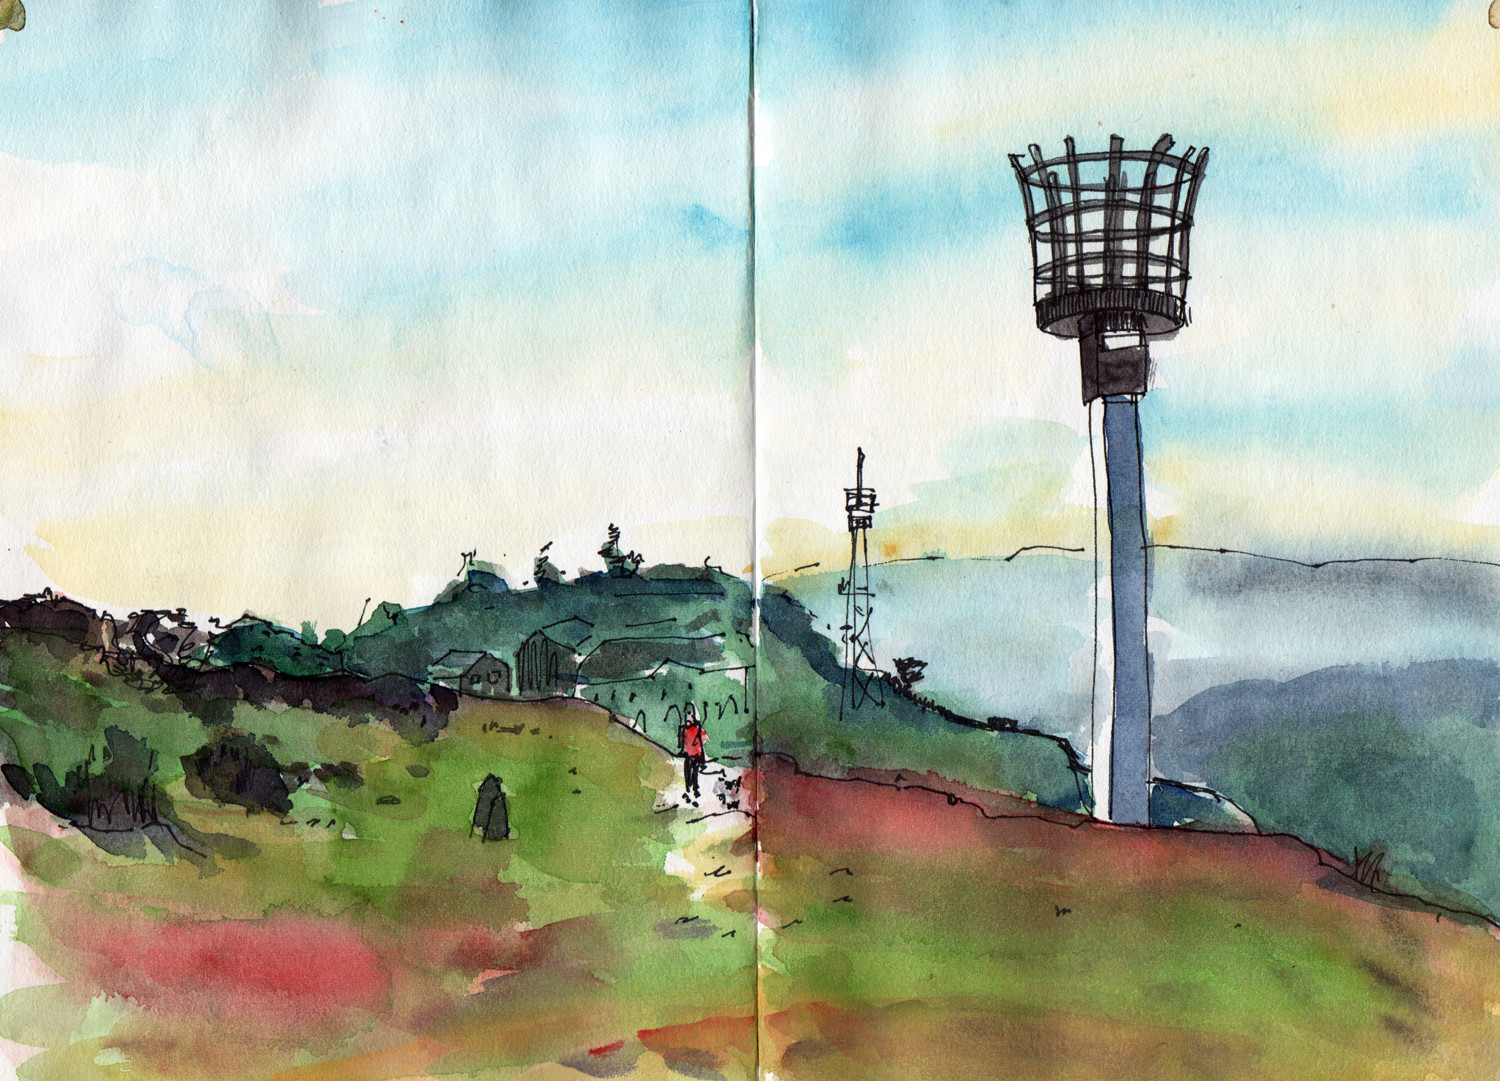 Landscape watercolour sketch by Sophie Peanut